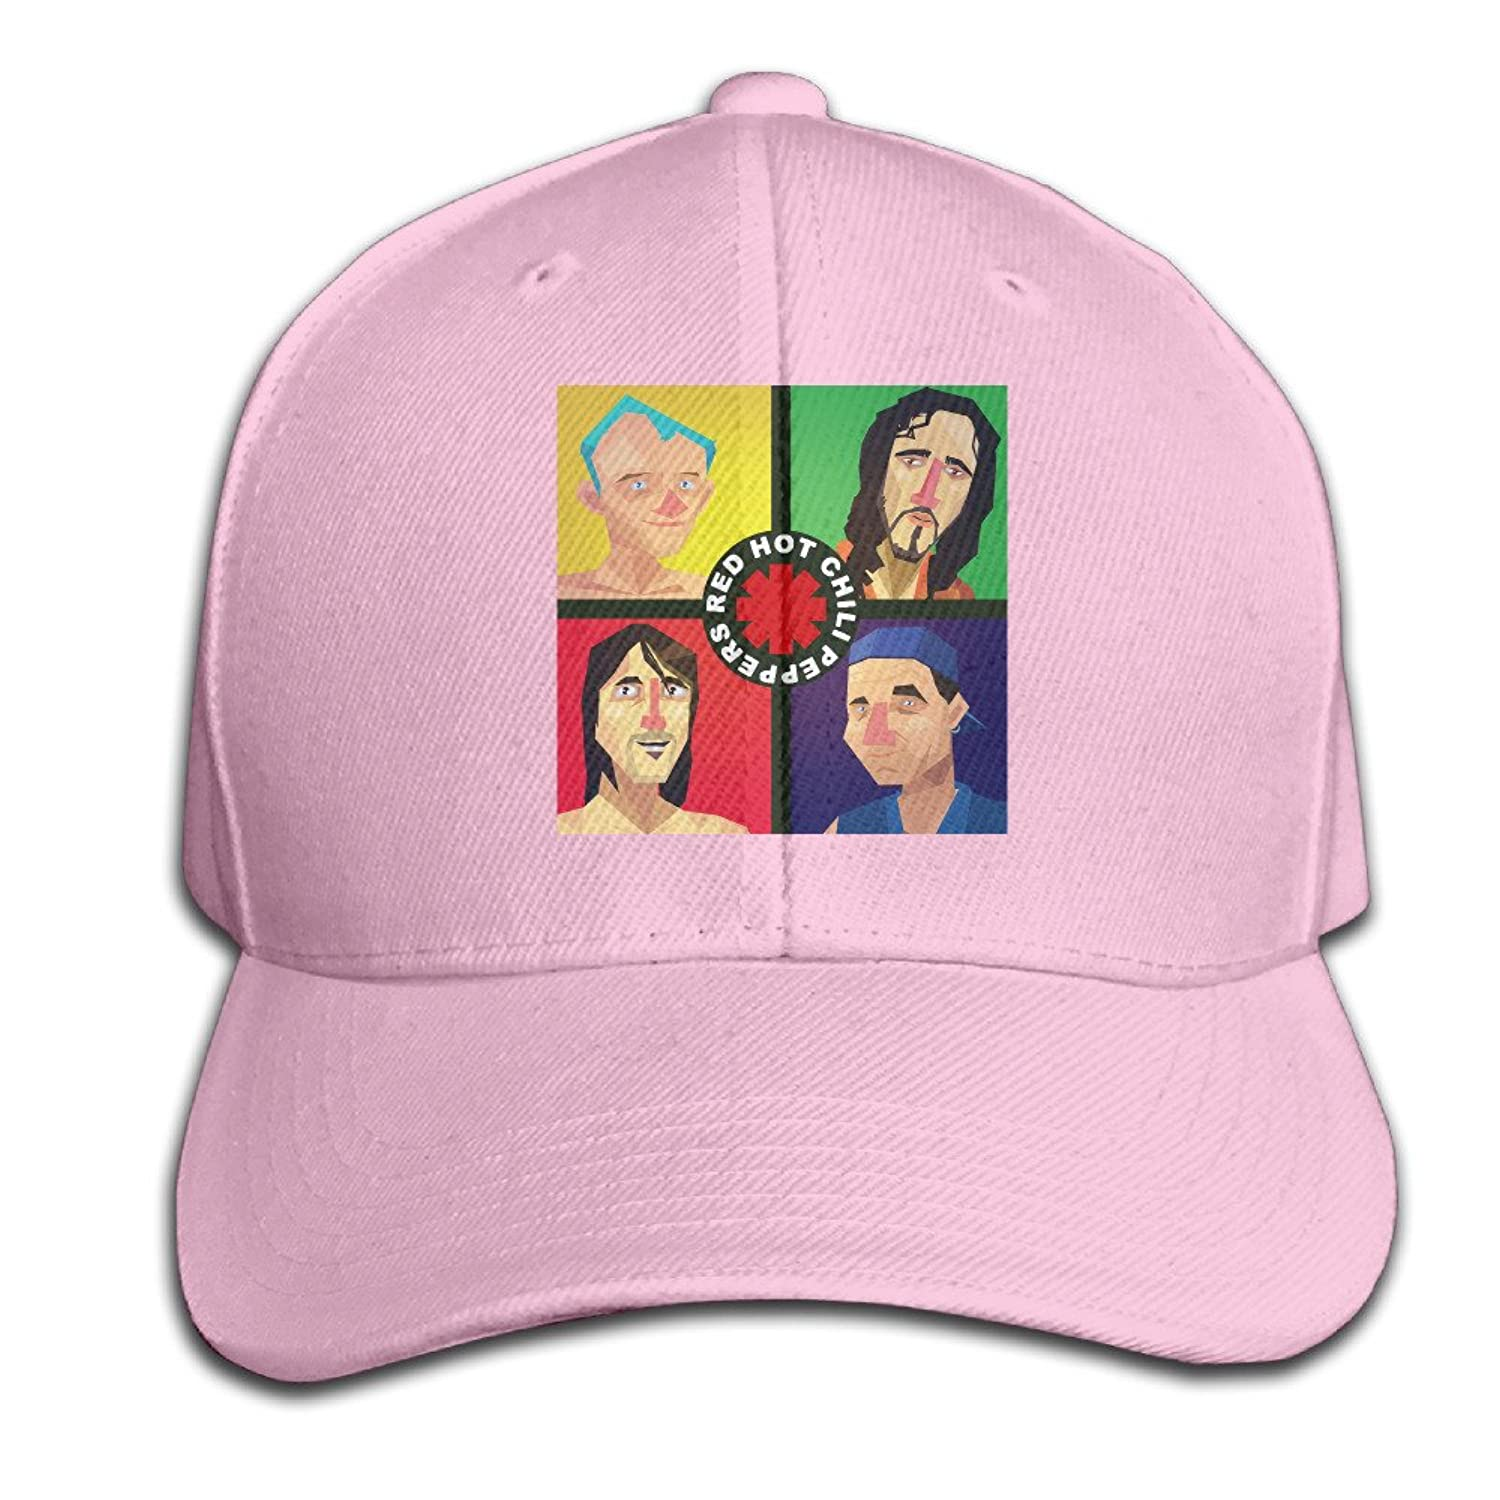 AGMPO Unisex Red Hot Chili Peppers Peaked Baseball Cap Hats